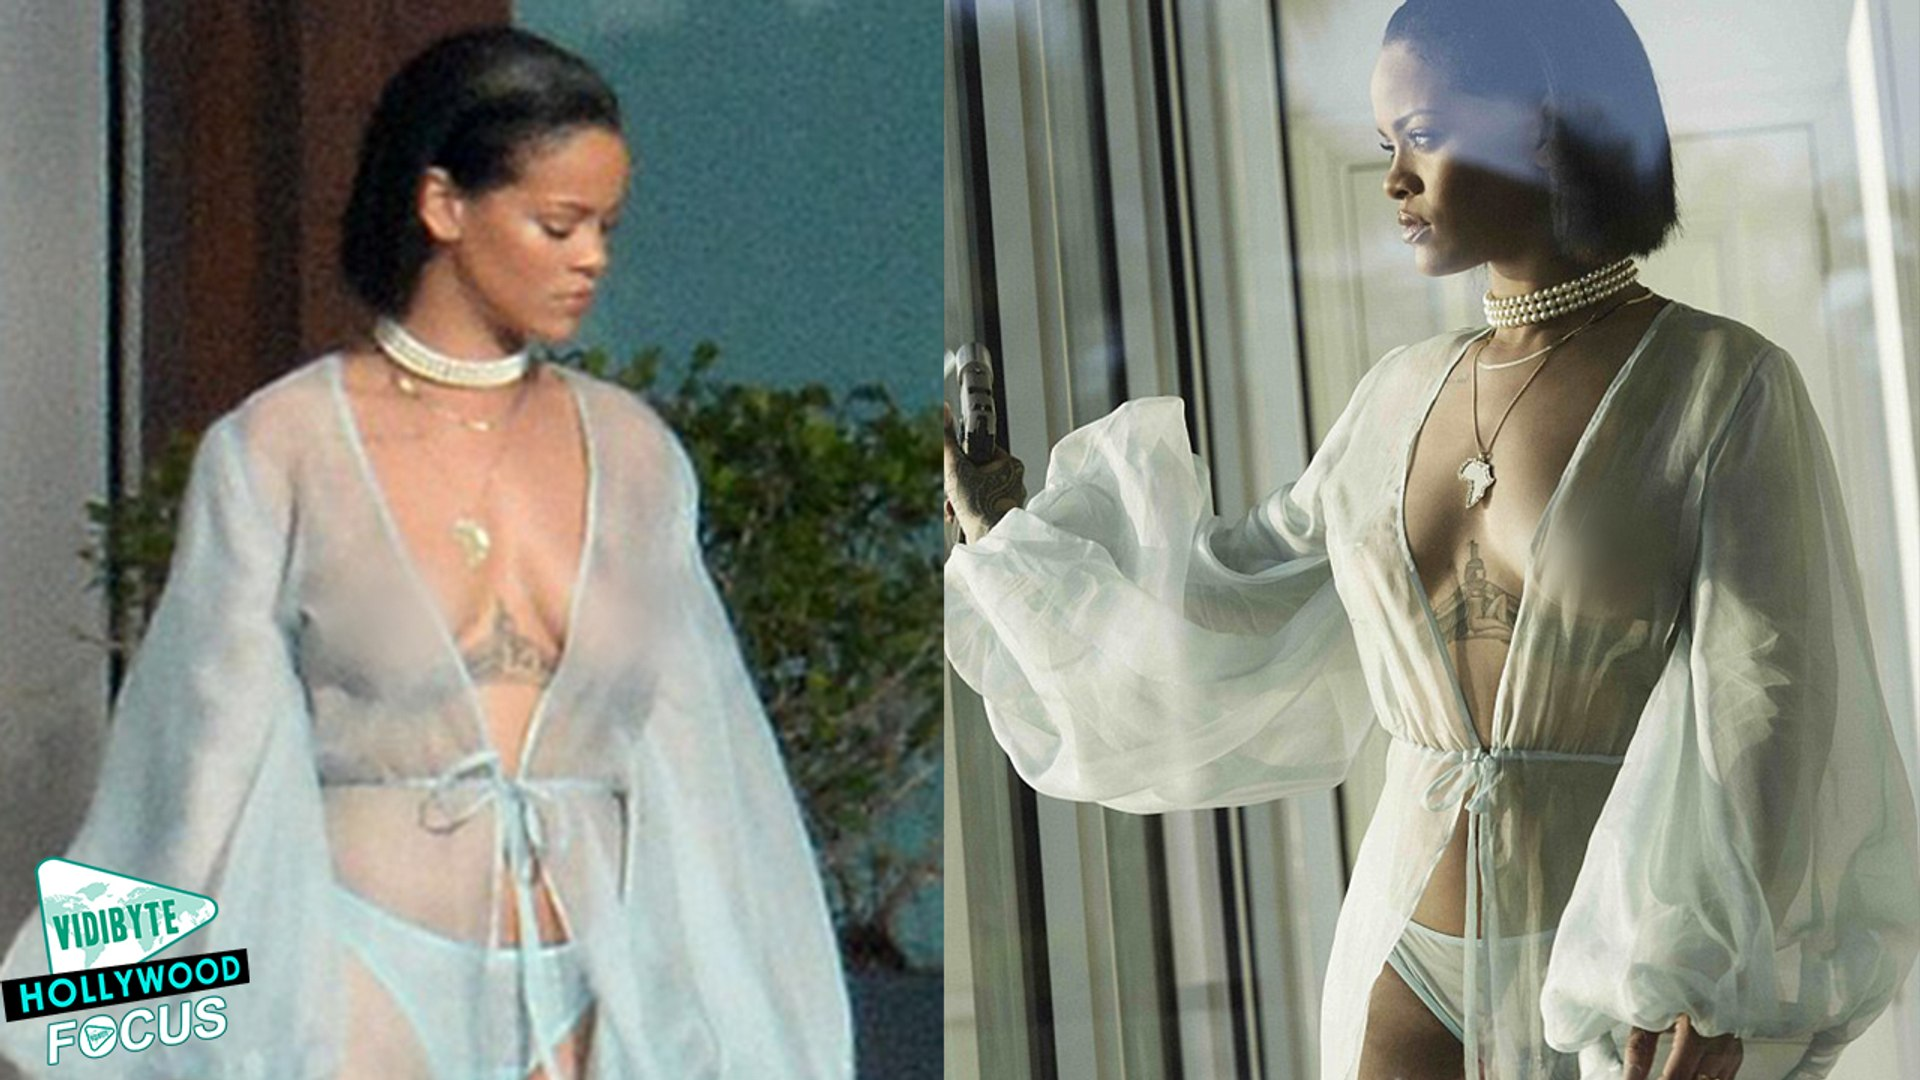 Rihanna Strips Down in Needed Me Music Video